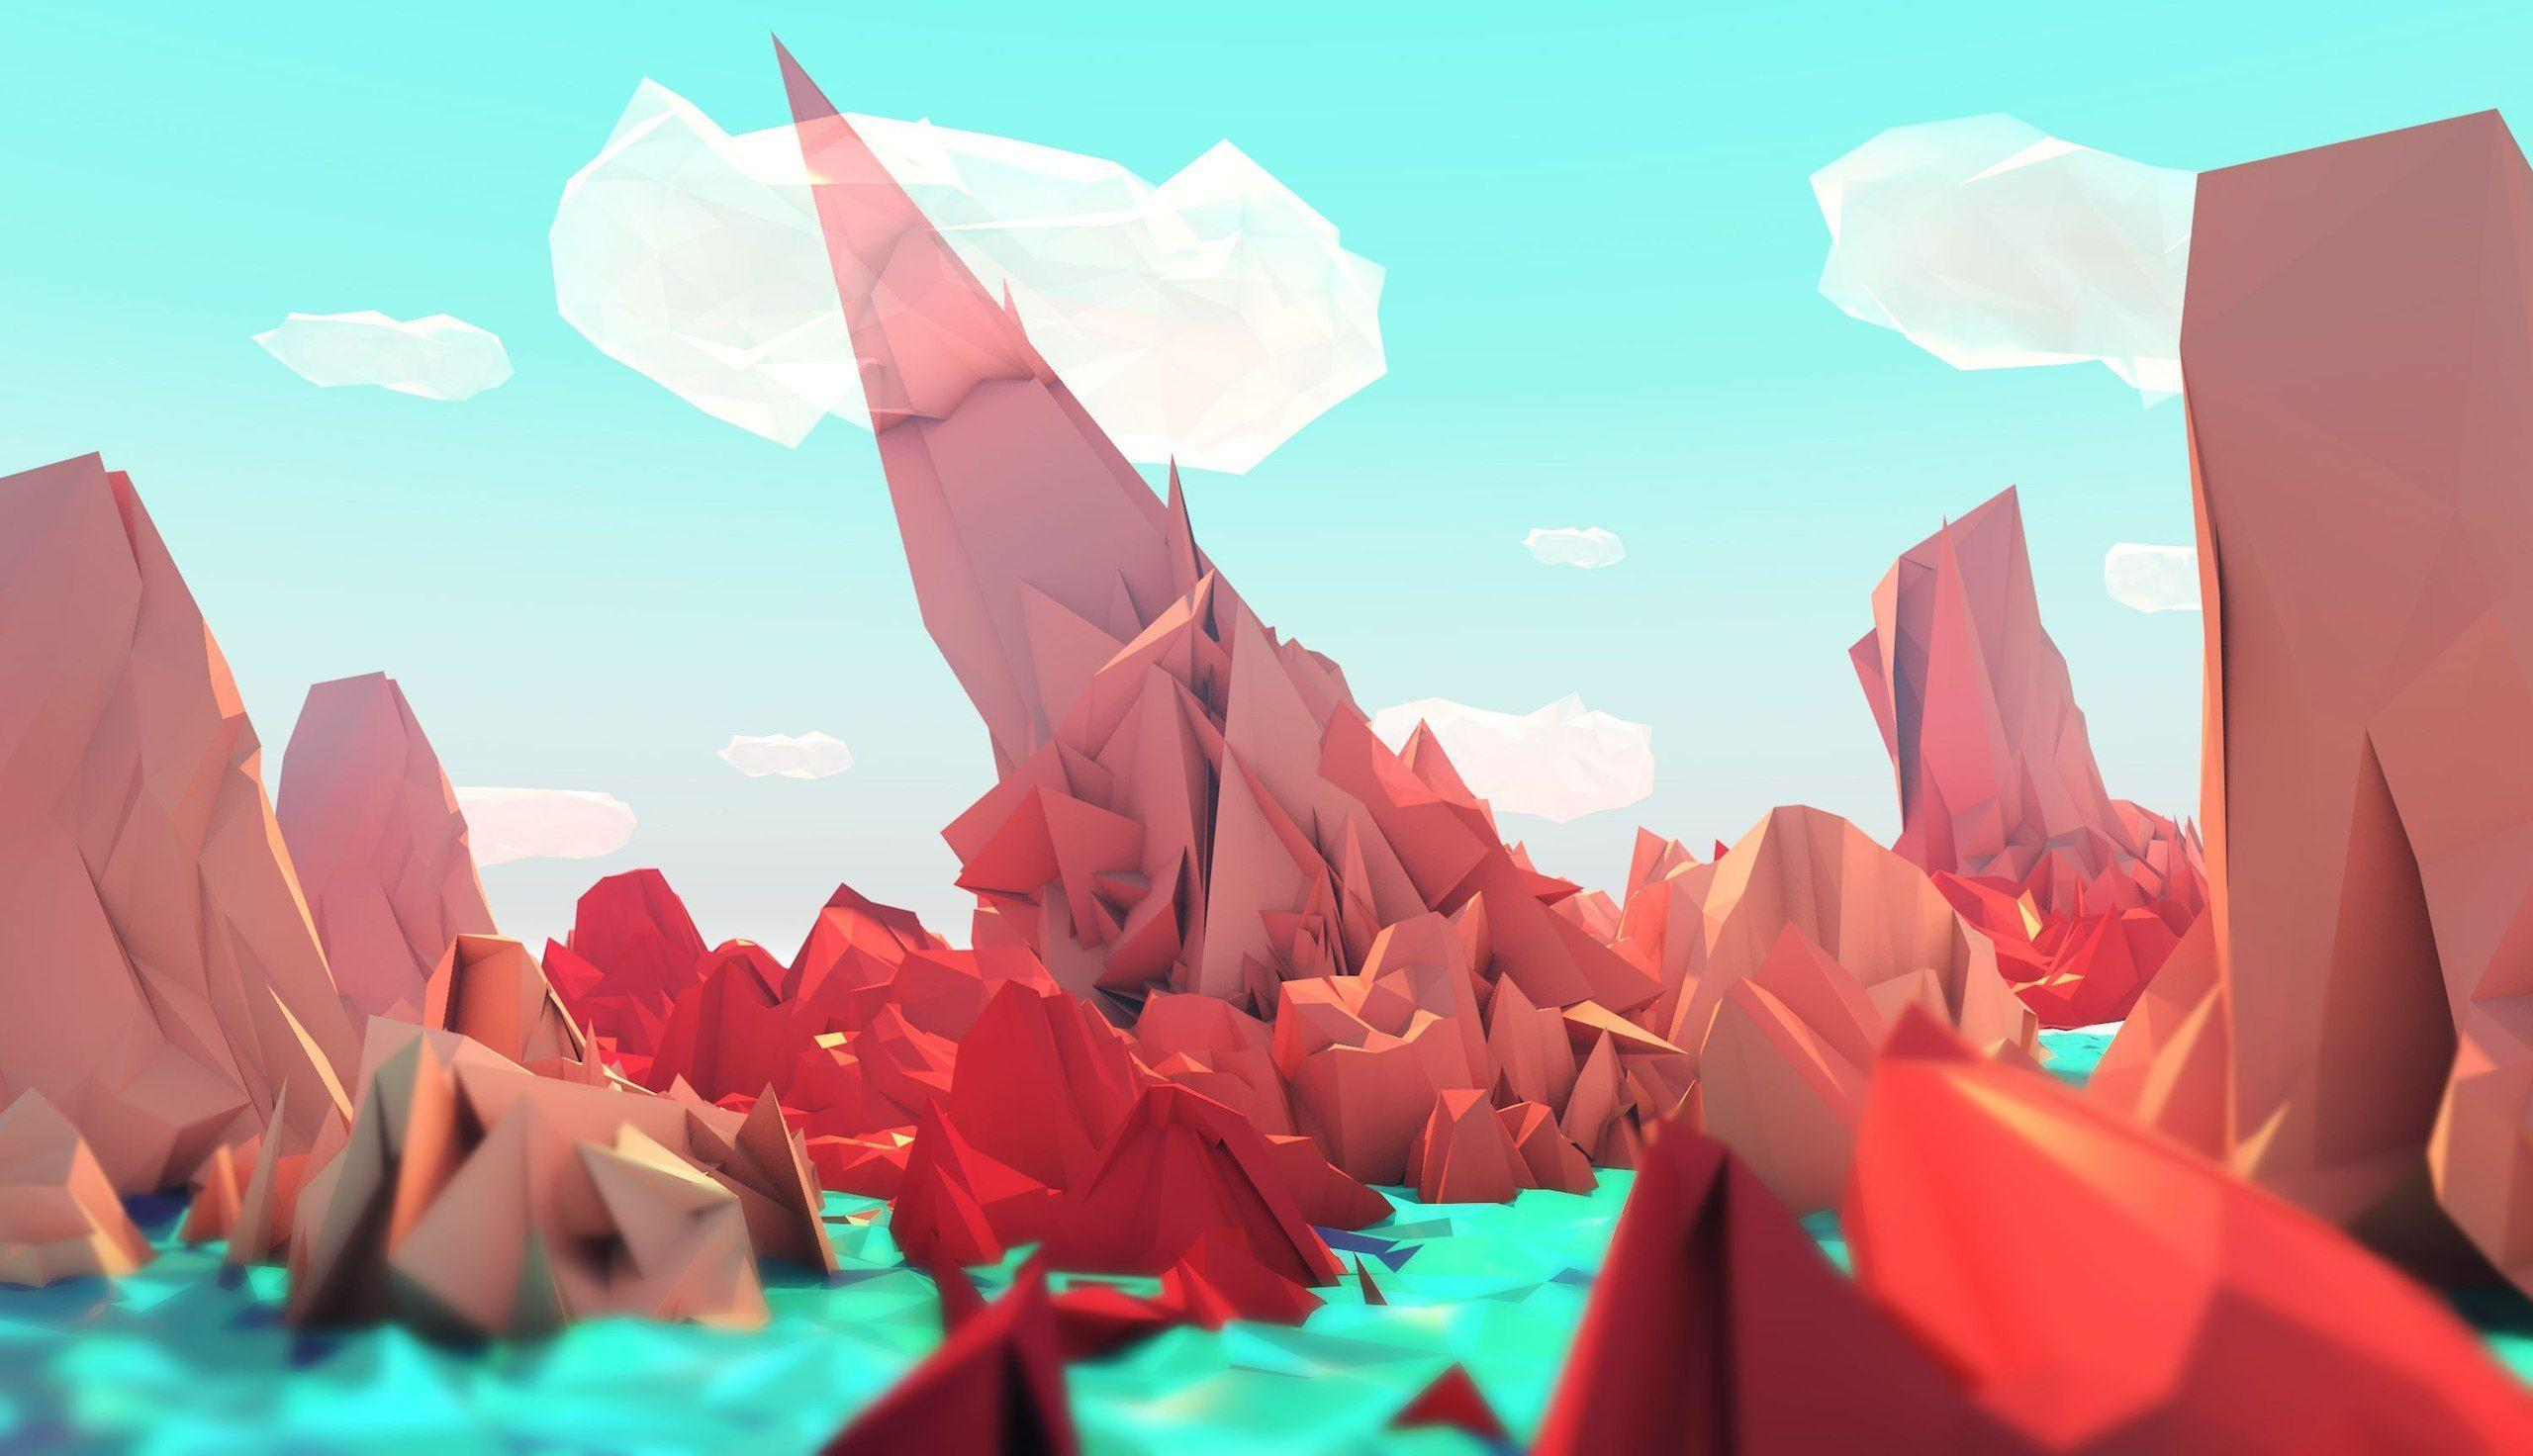 Low poly style wallpapers fulll pack HD (Part 1) - Album on Imgur